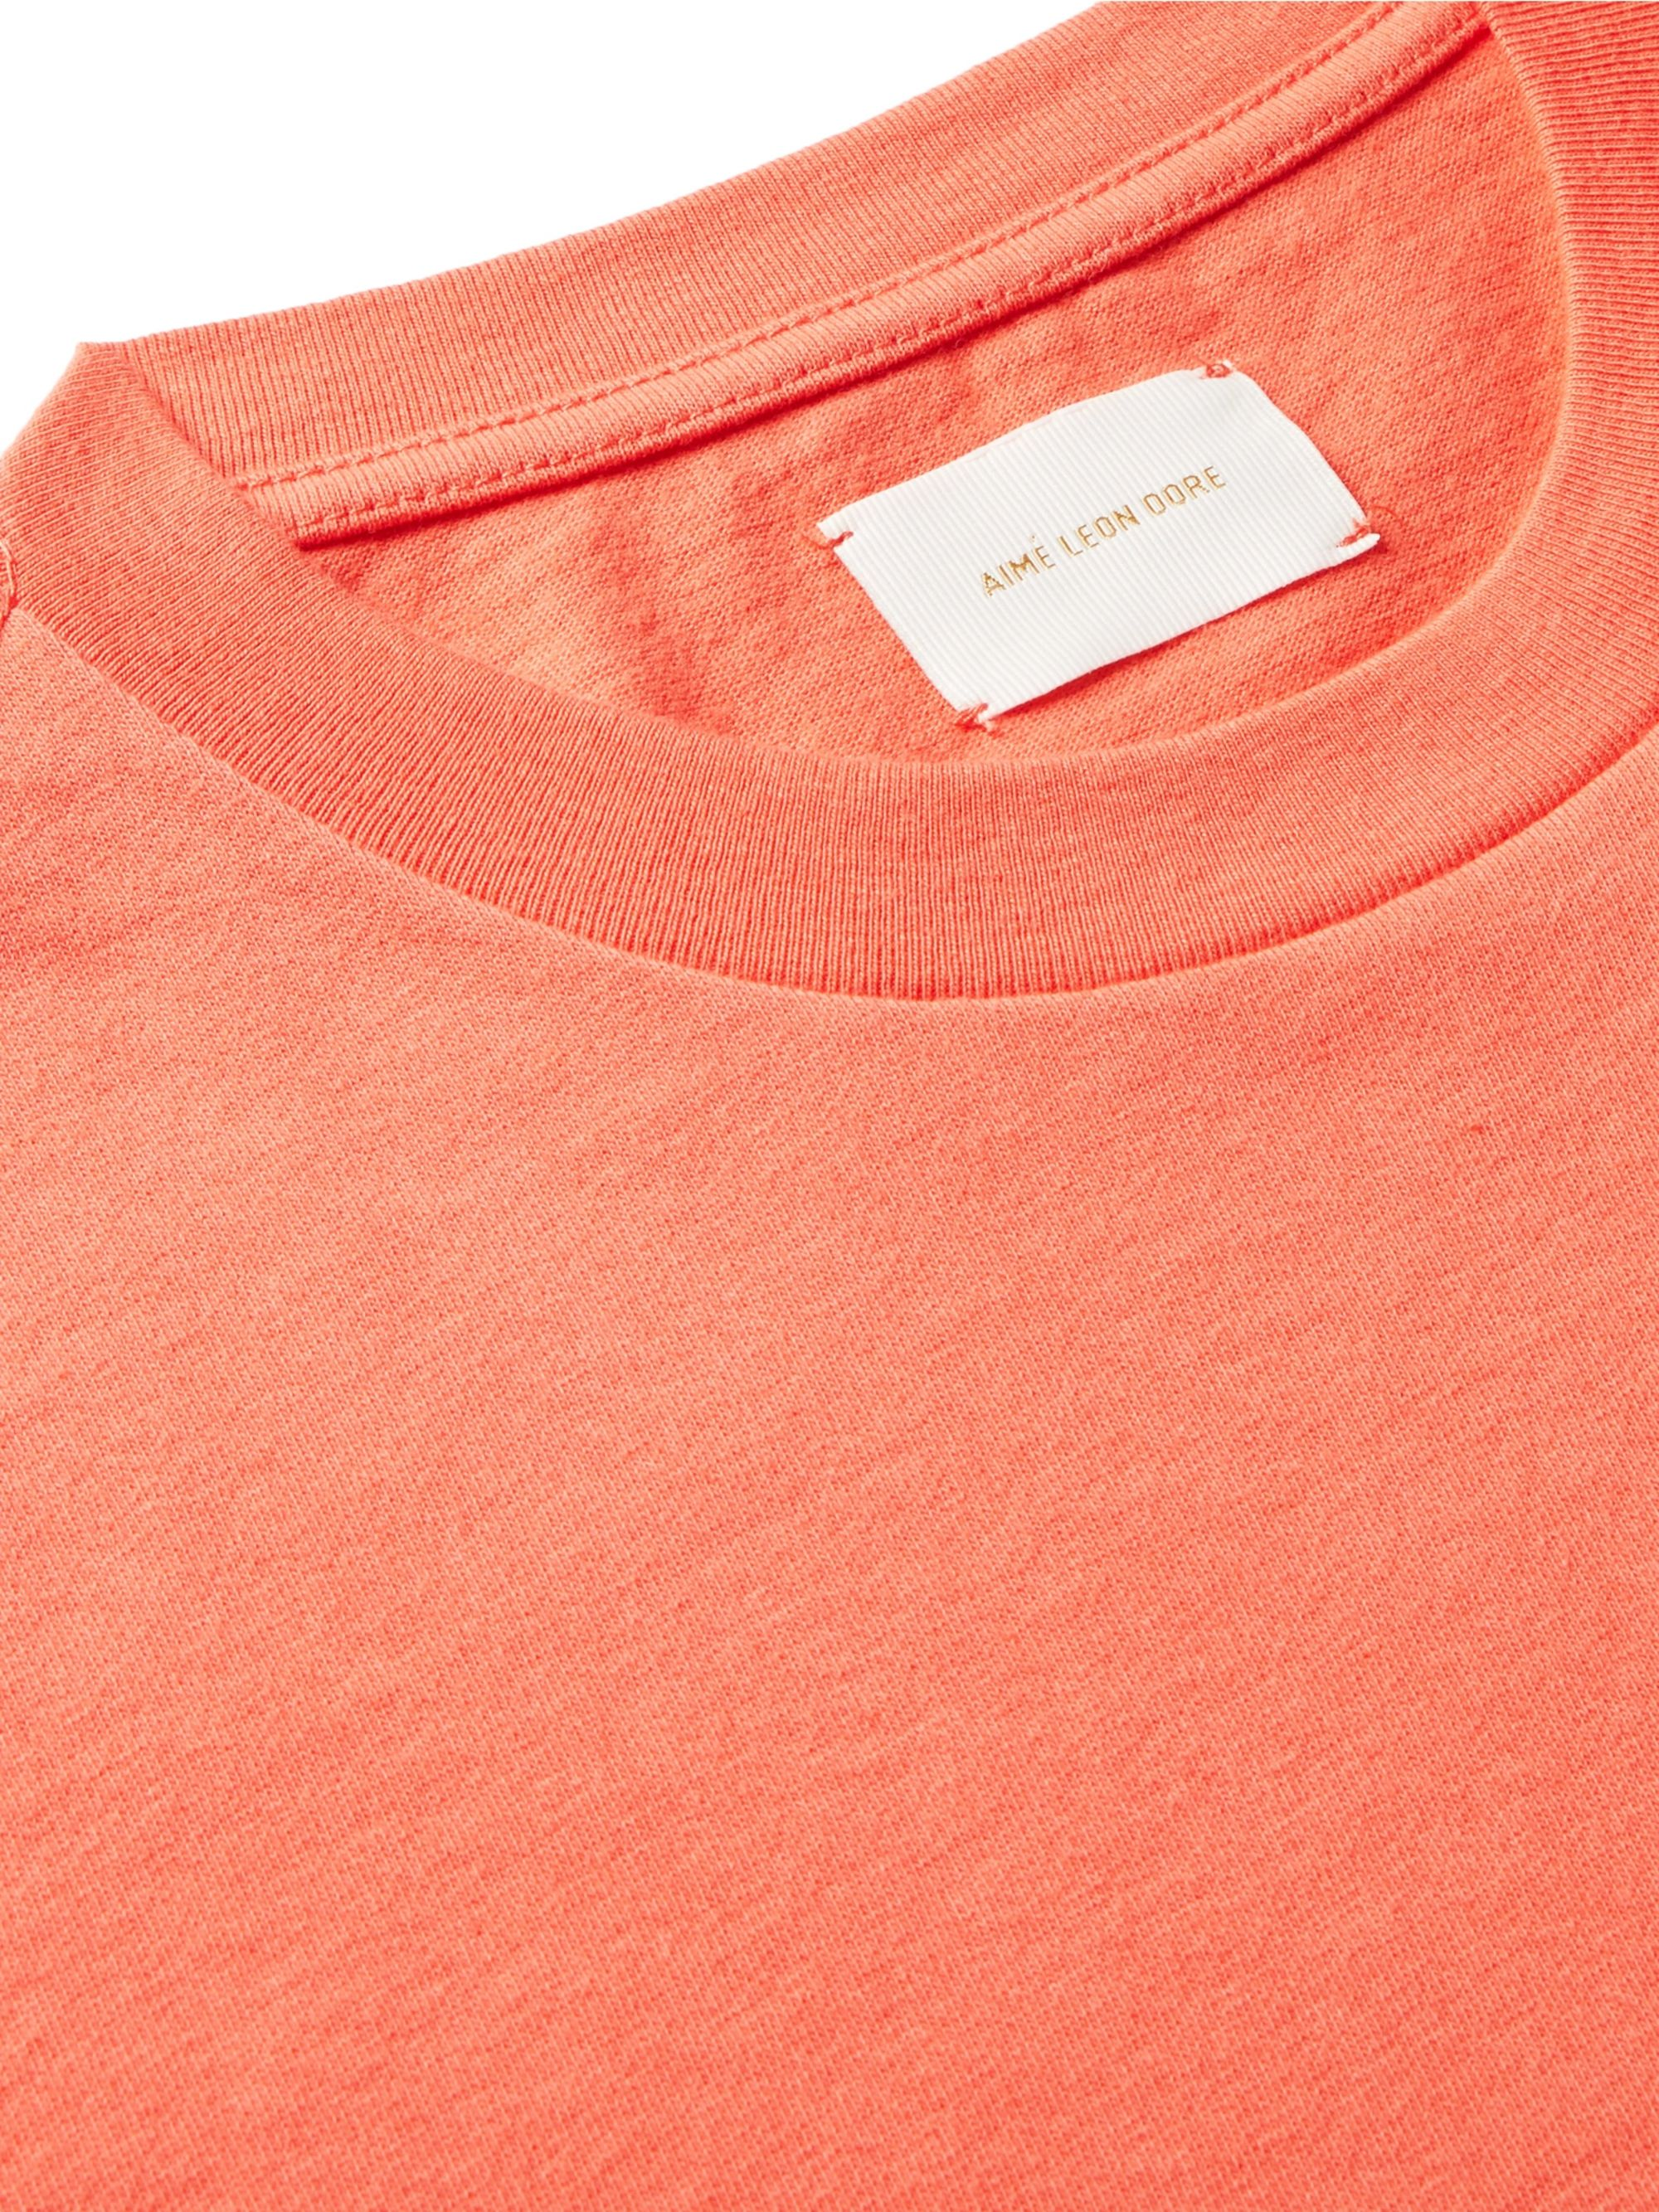 Aimé Leon Dore Logo-Embroidered Cotton-Jersey T-Shirt